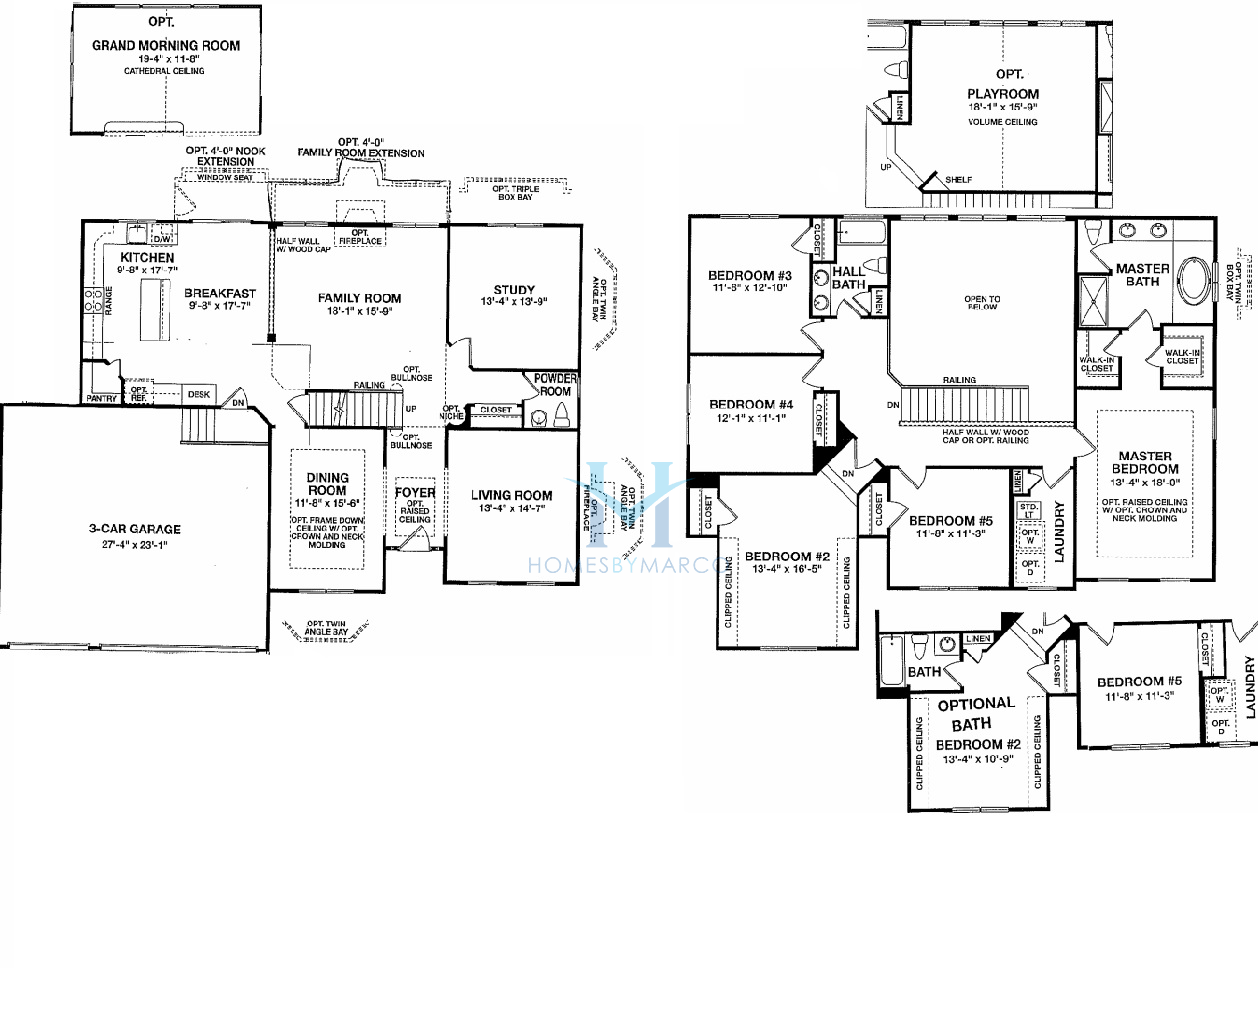 Orleans homes bainbridge floor plan thecarpets co for Orleans home builders floor plans